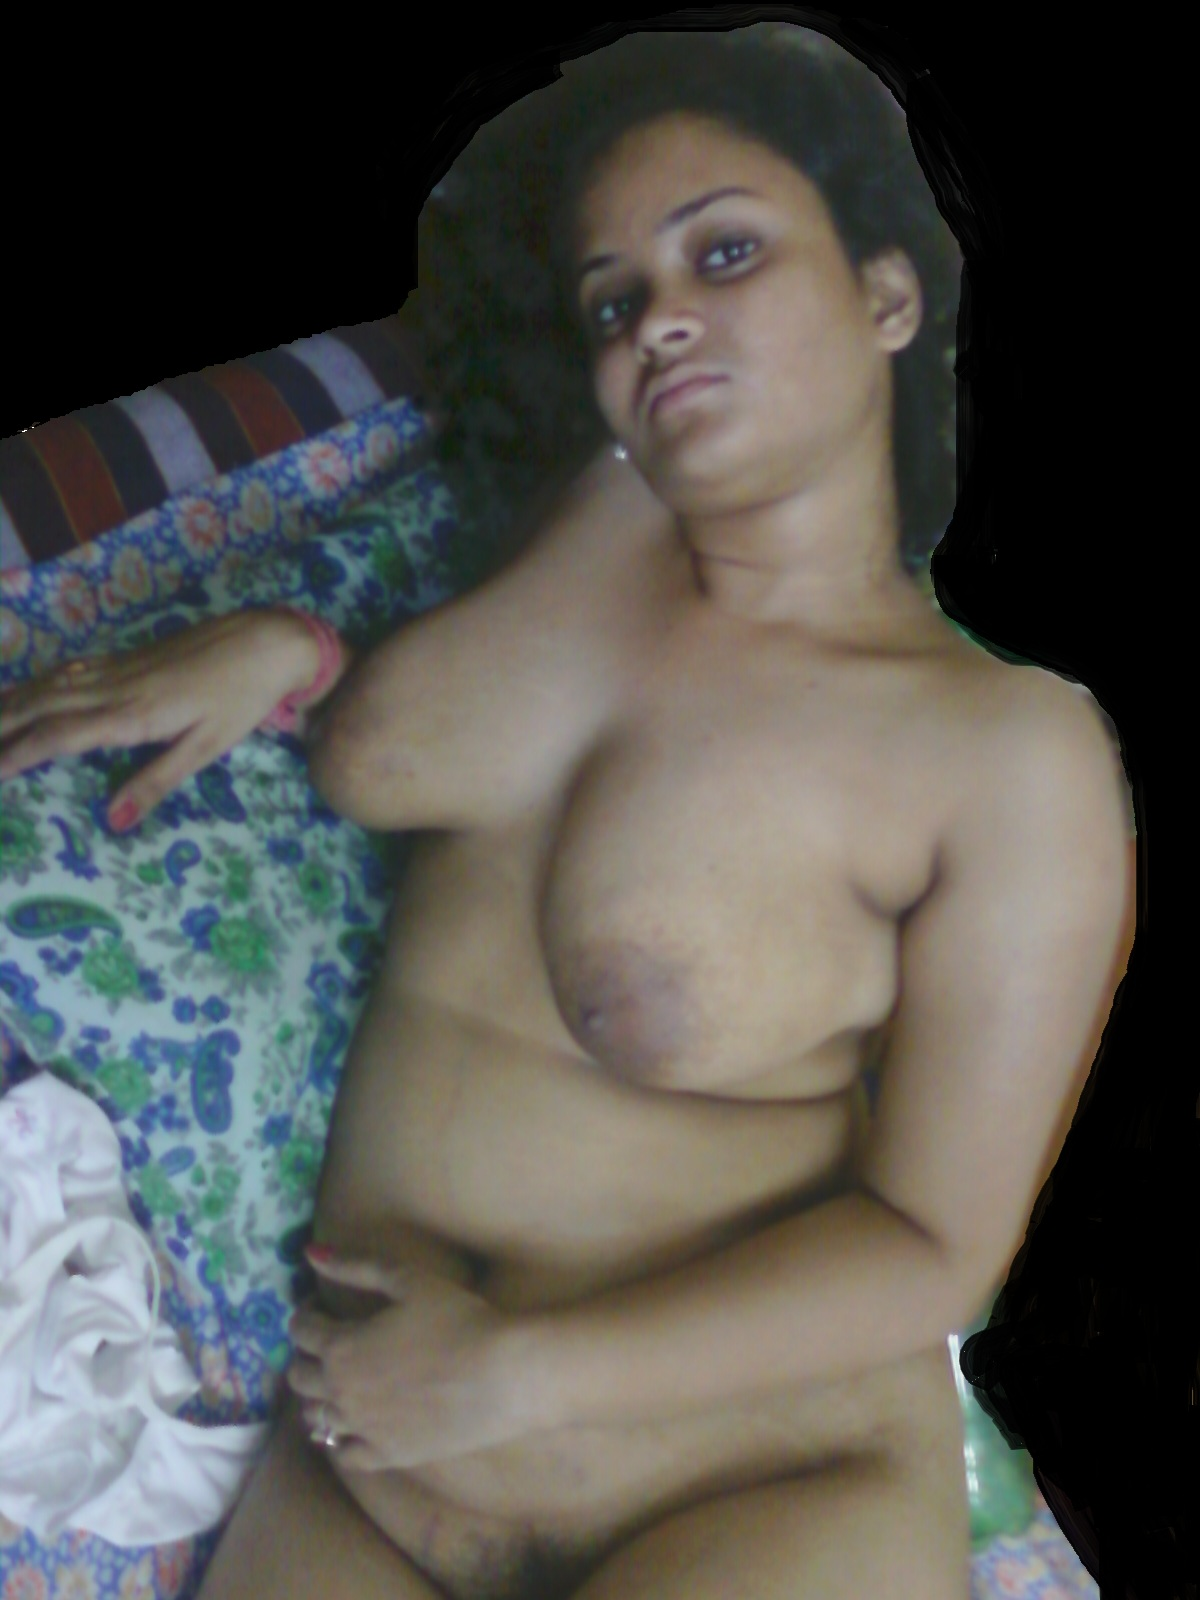 Nude pics of Kolkata college girl with big boobs | Real Indian Gfs